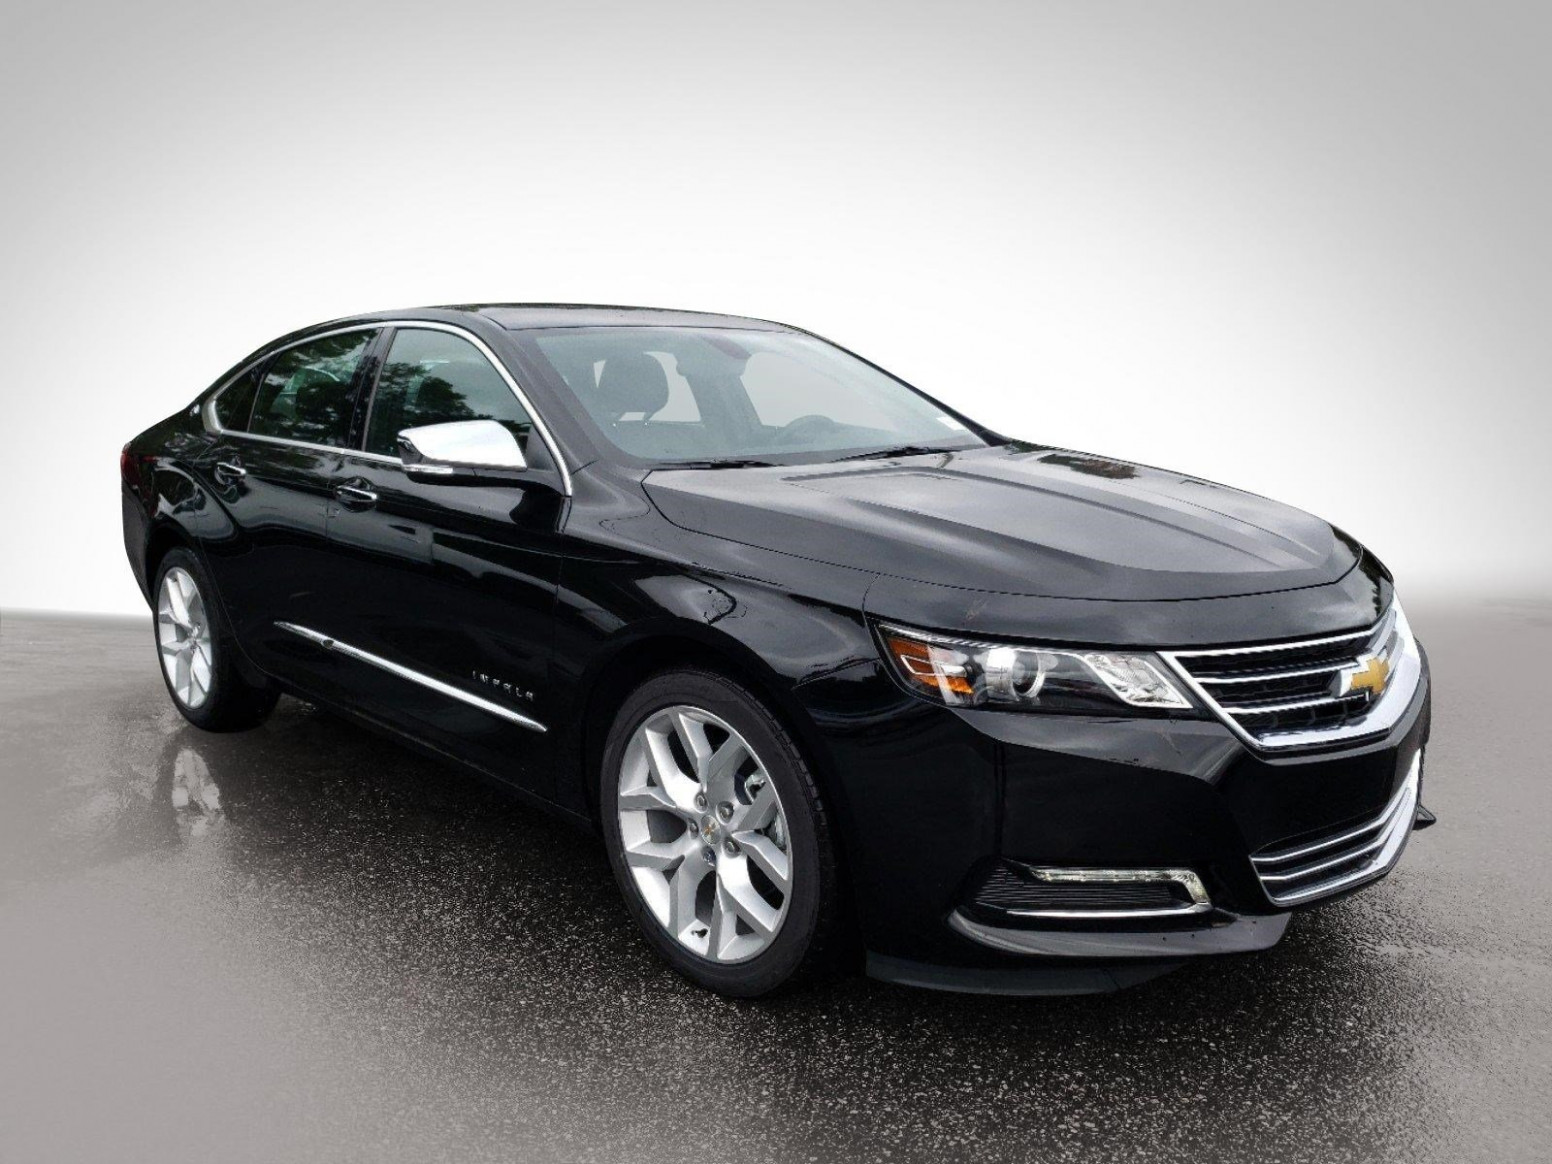 New Chevrolet Impala For Sale in Buford, GA